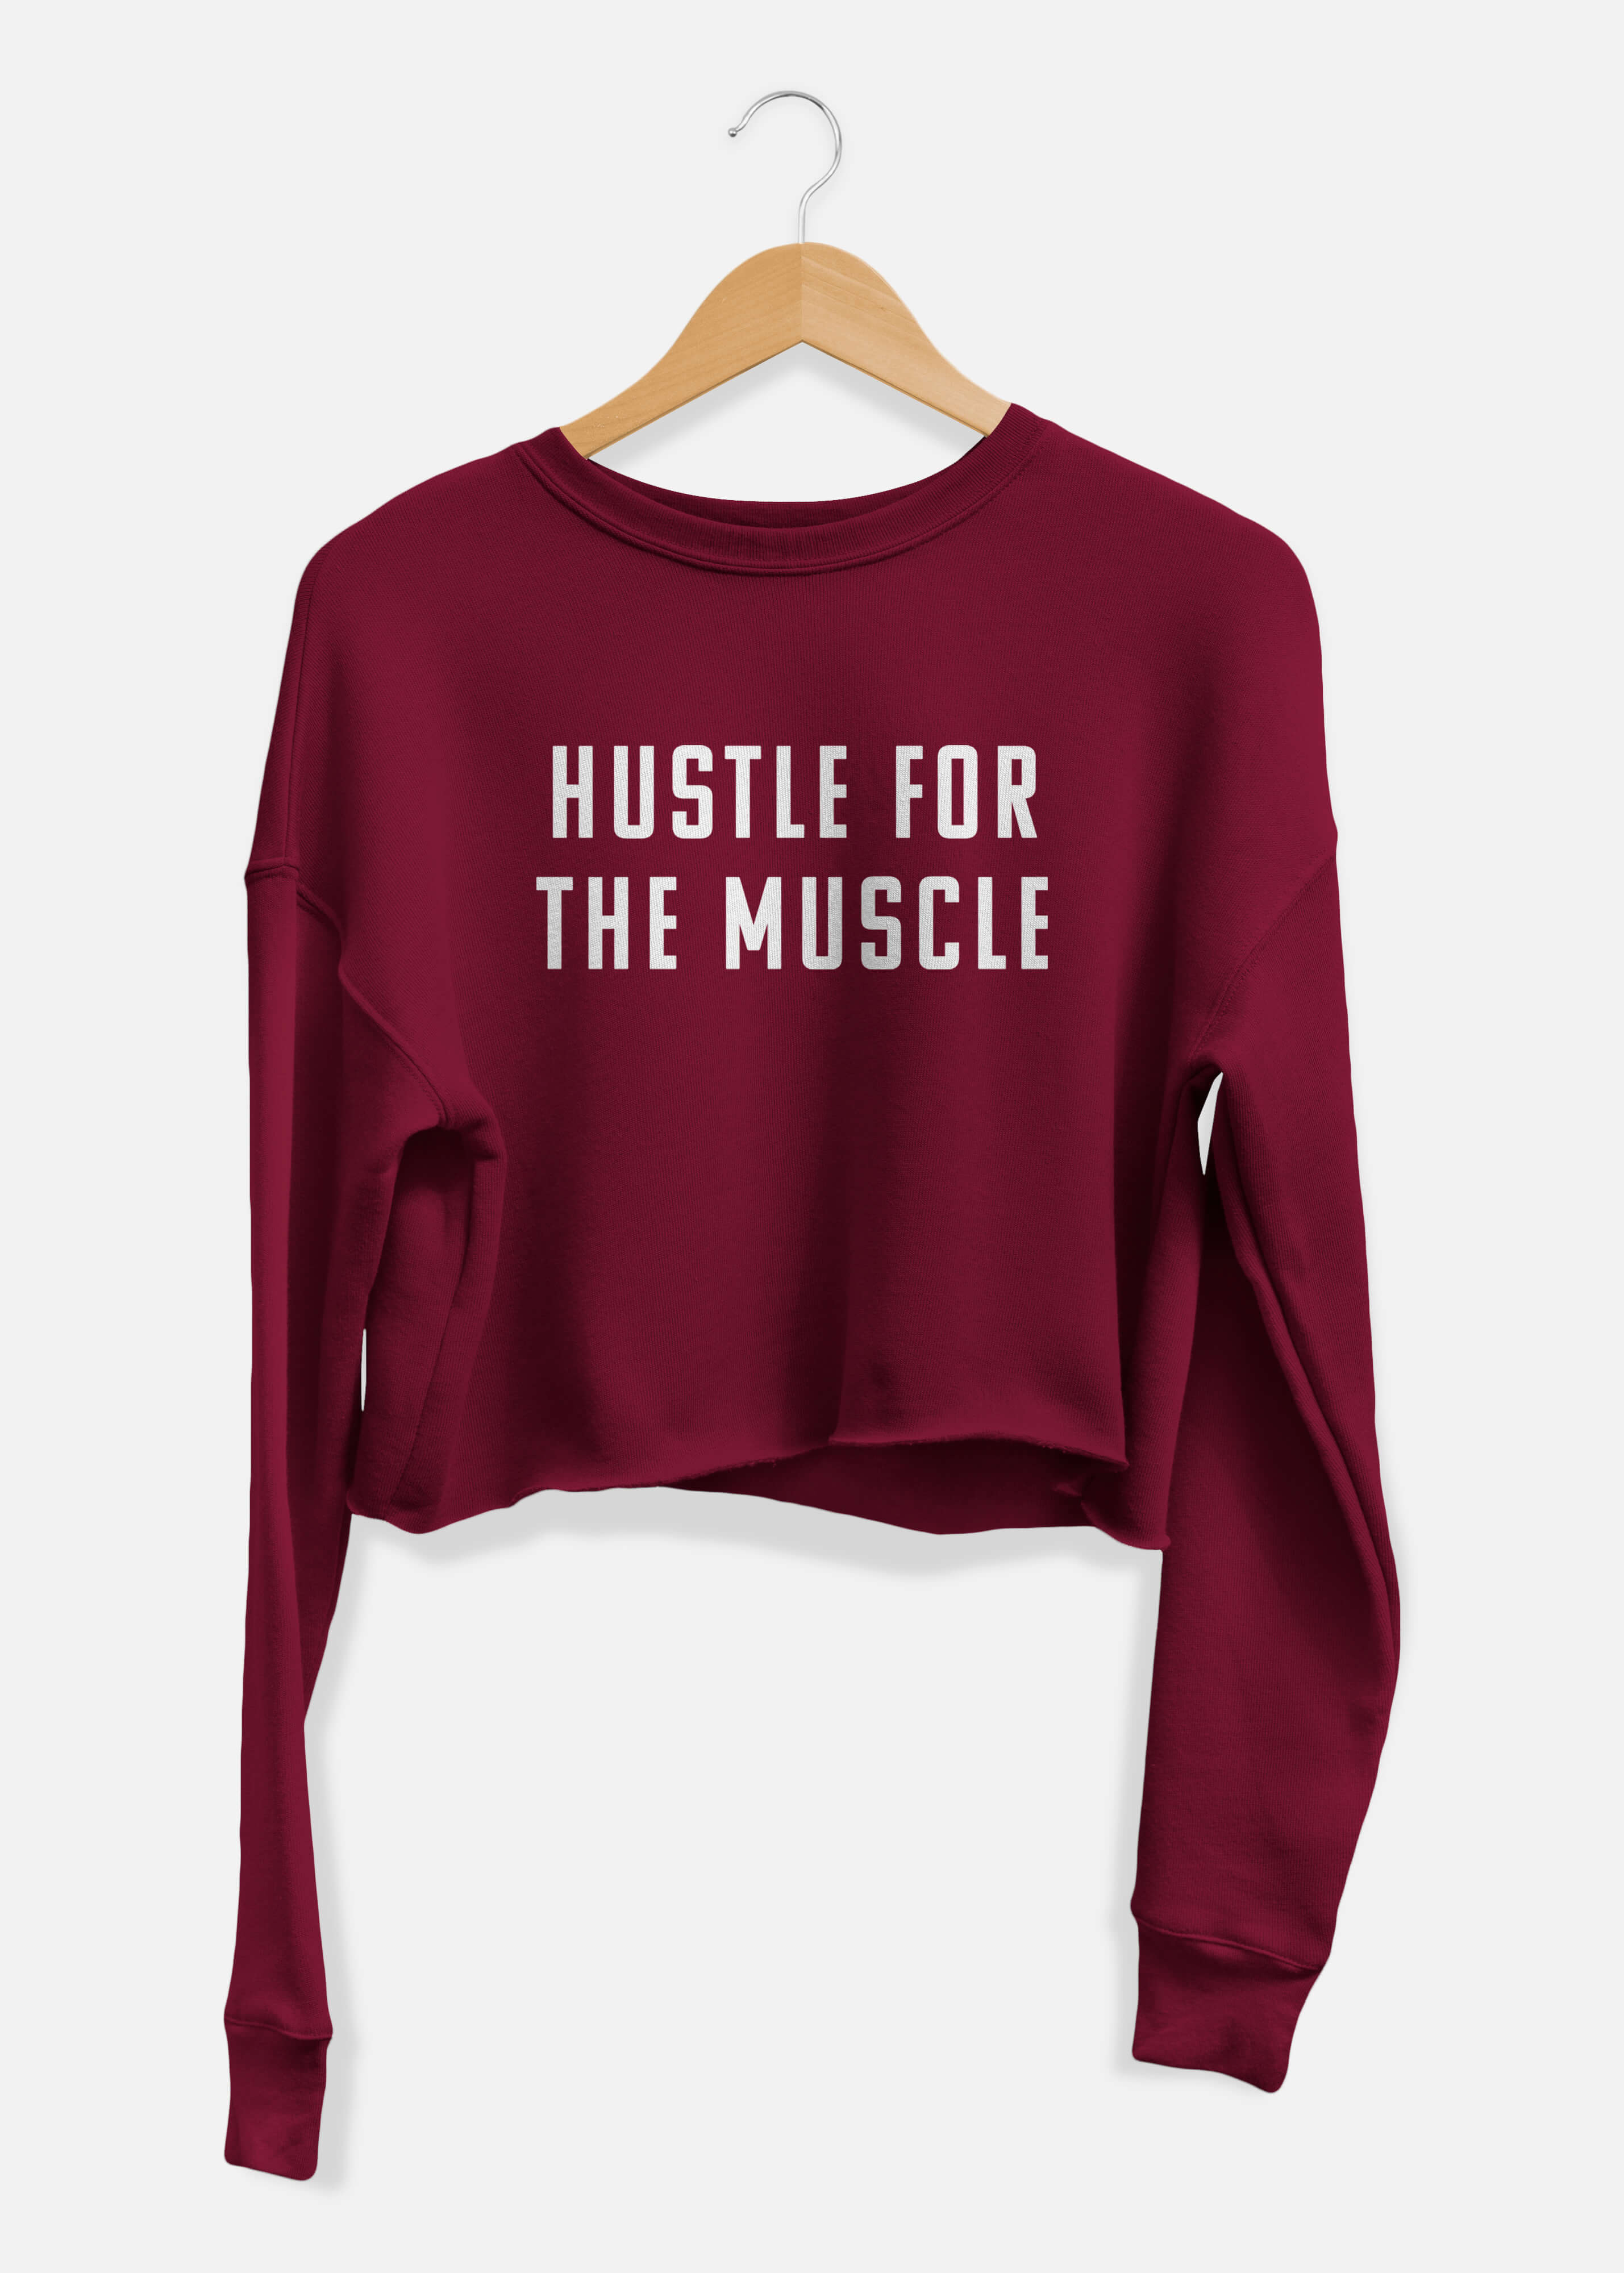 Hustle For The Muscle Cropped Sweater